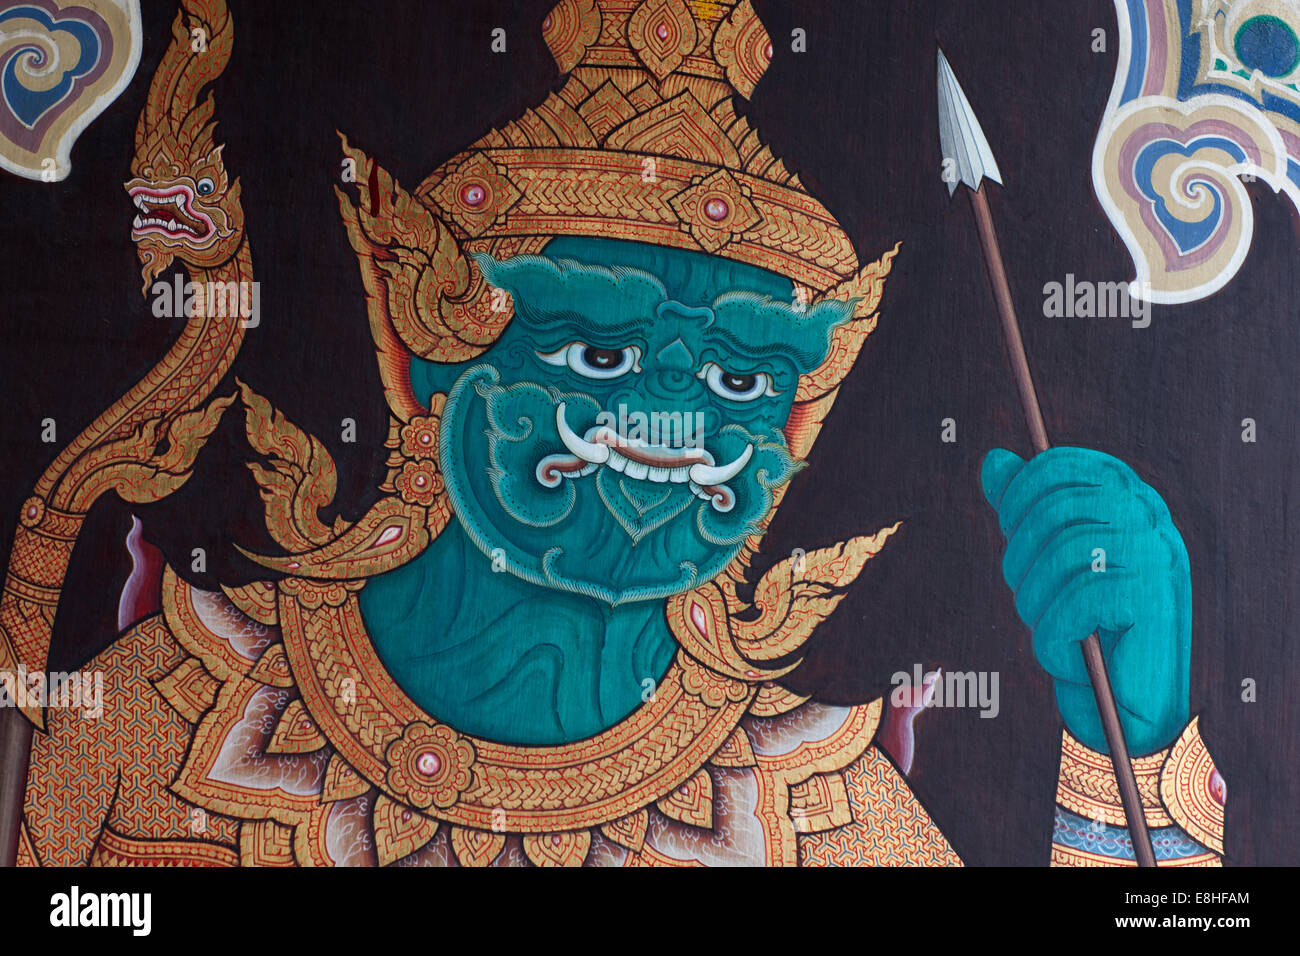 The Royal Grand Palace, Bangkok Thailand, Asian art work decorate the halls of the palace. - Stock Image